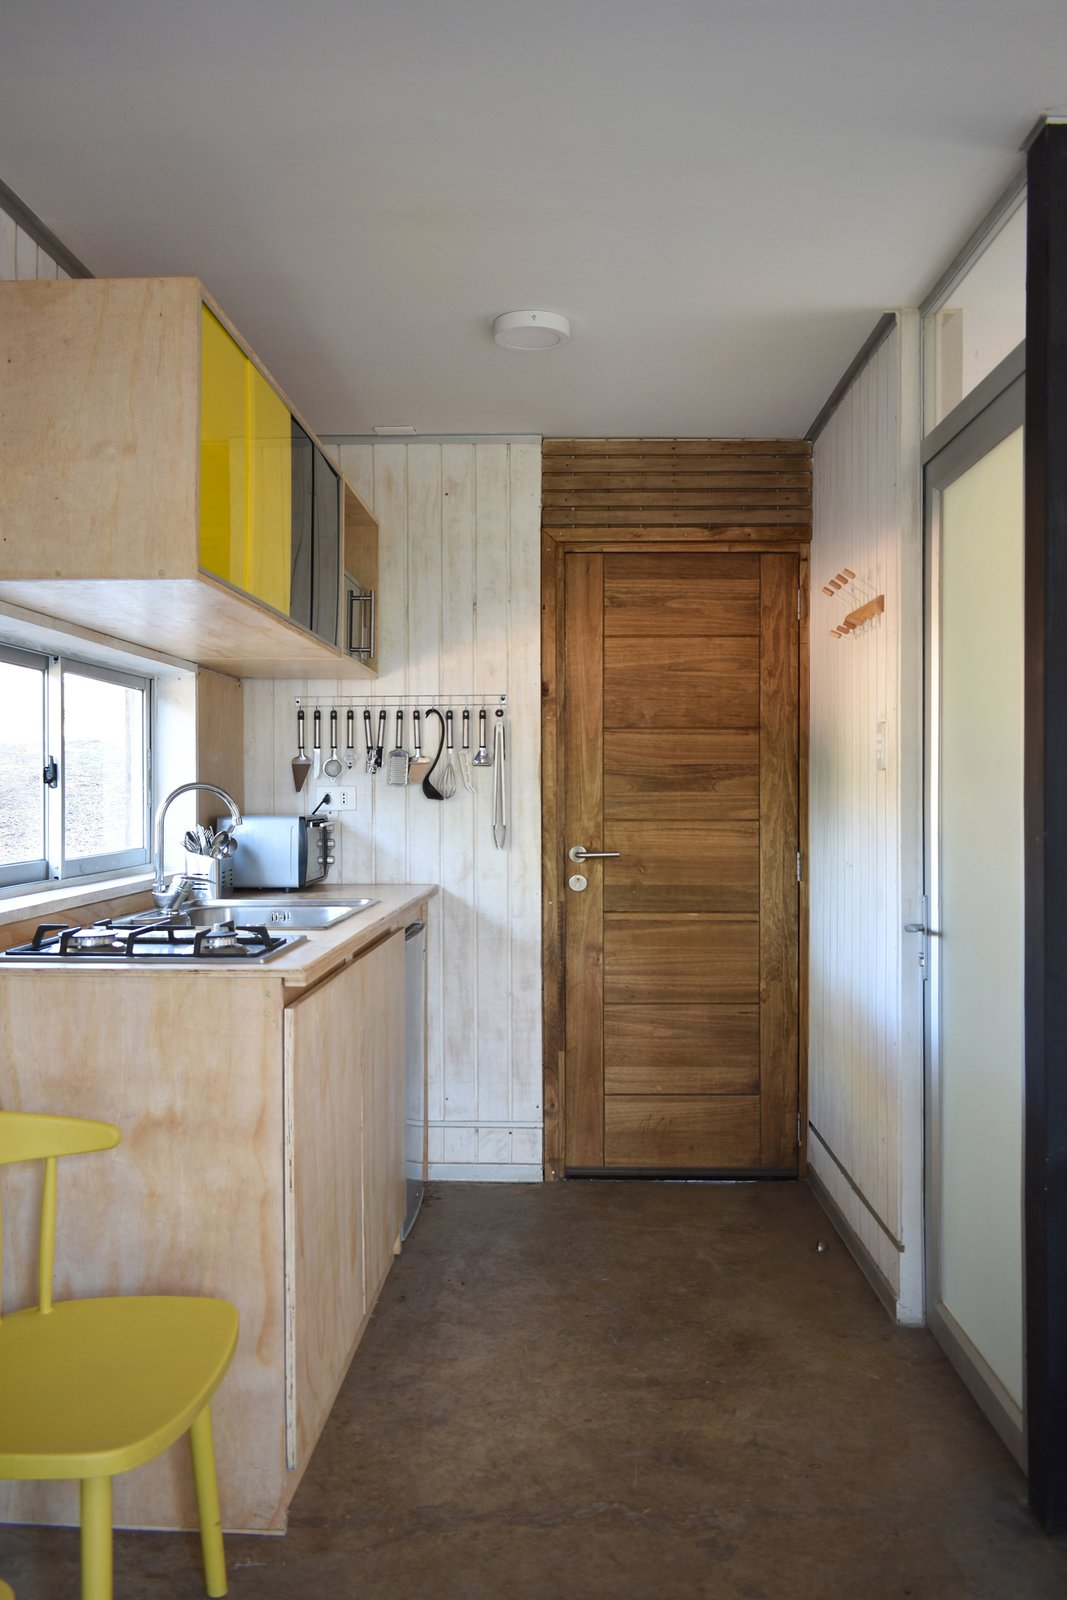 Kitchen, Drop In Sink, Ceiling Lighting, Cooktops, Wood Counter, Wood Cabinet, and Refrigerator The kitchen area and living/dining spaces are located on the first level, along with a bathroom.  Best Photos from A Patagonian Prefab Cabin Is Built to Withstand Volatile Climates